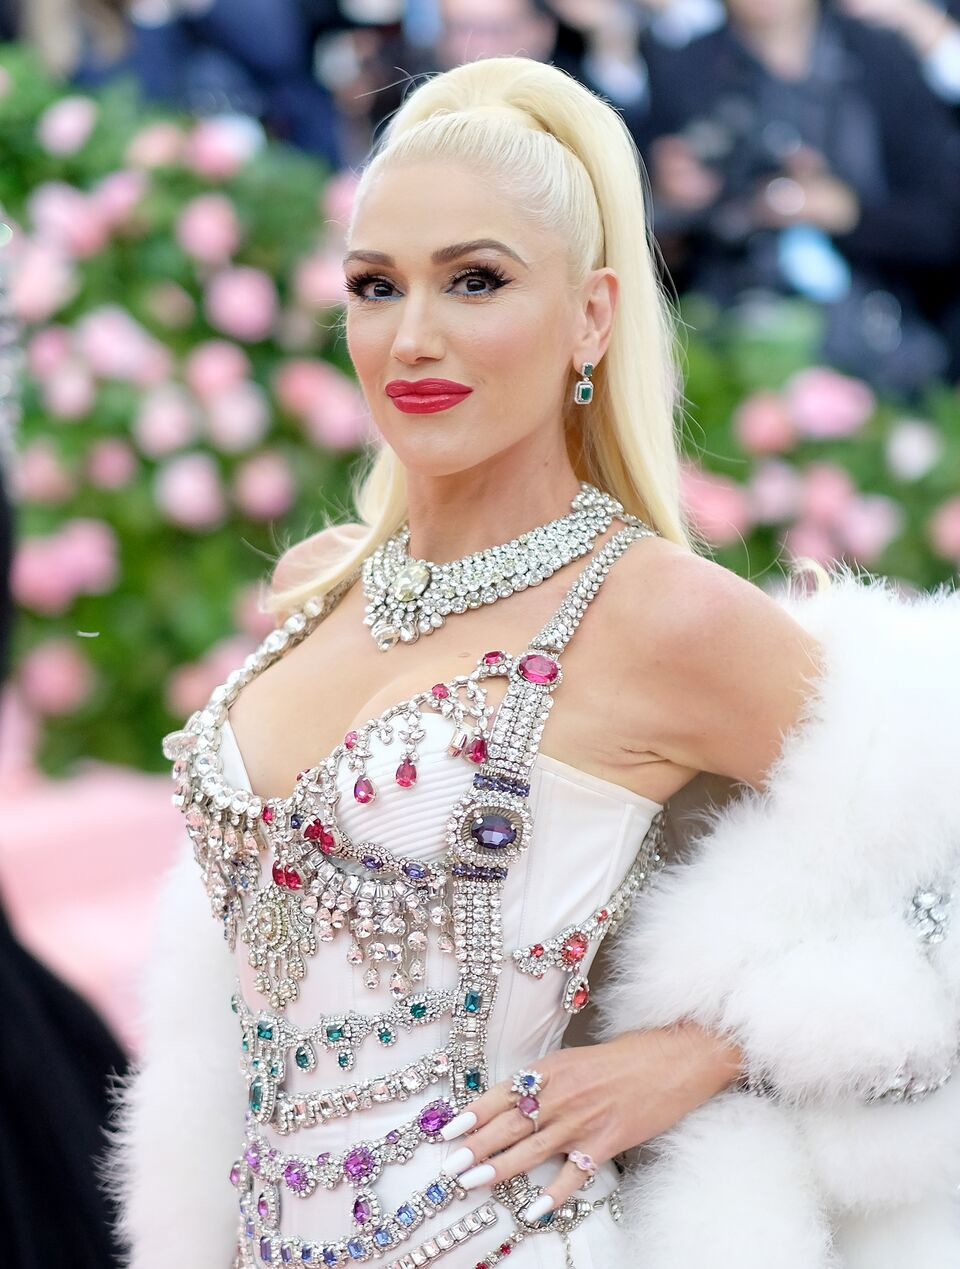 Gwen Stefani attends The 2019 Met Gala. | Source: Getty Images